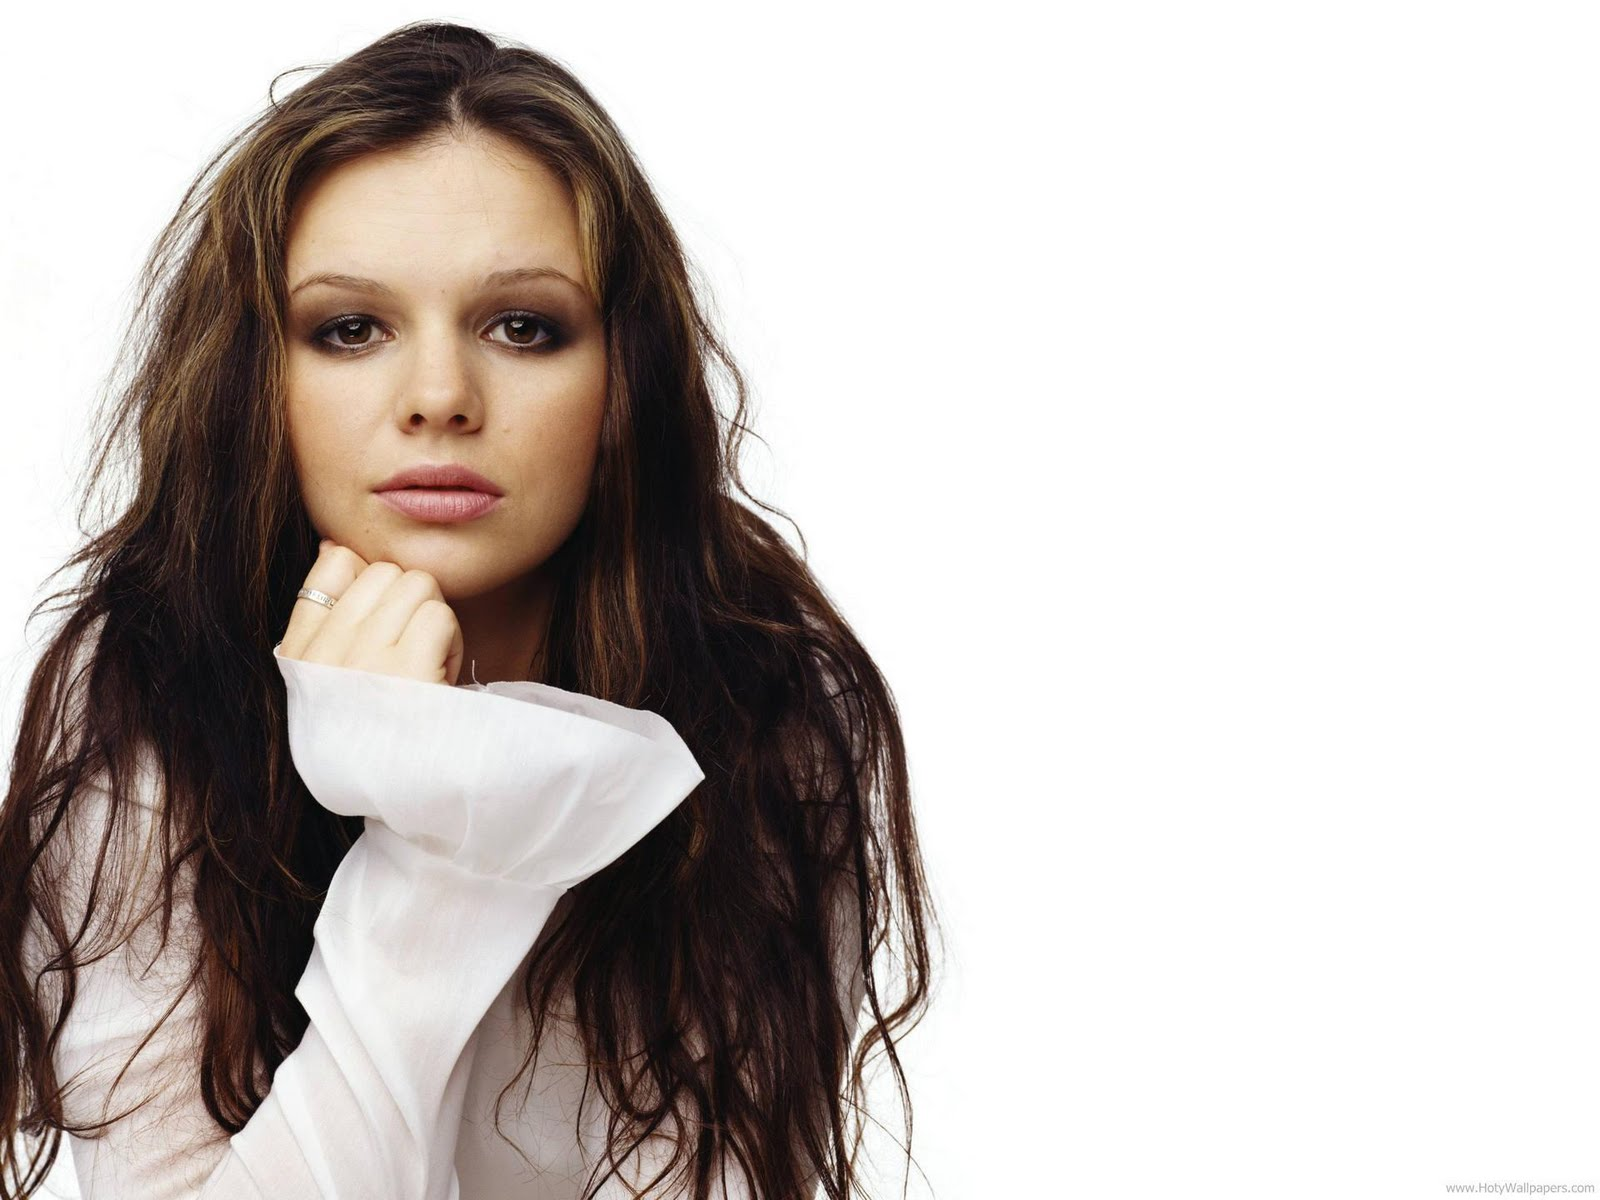 Child Wallpaper Hd Booty Me Now Amber Tamblyn Glamorous Wallpapers